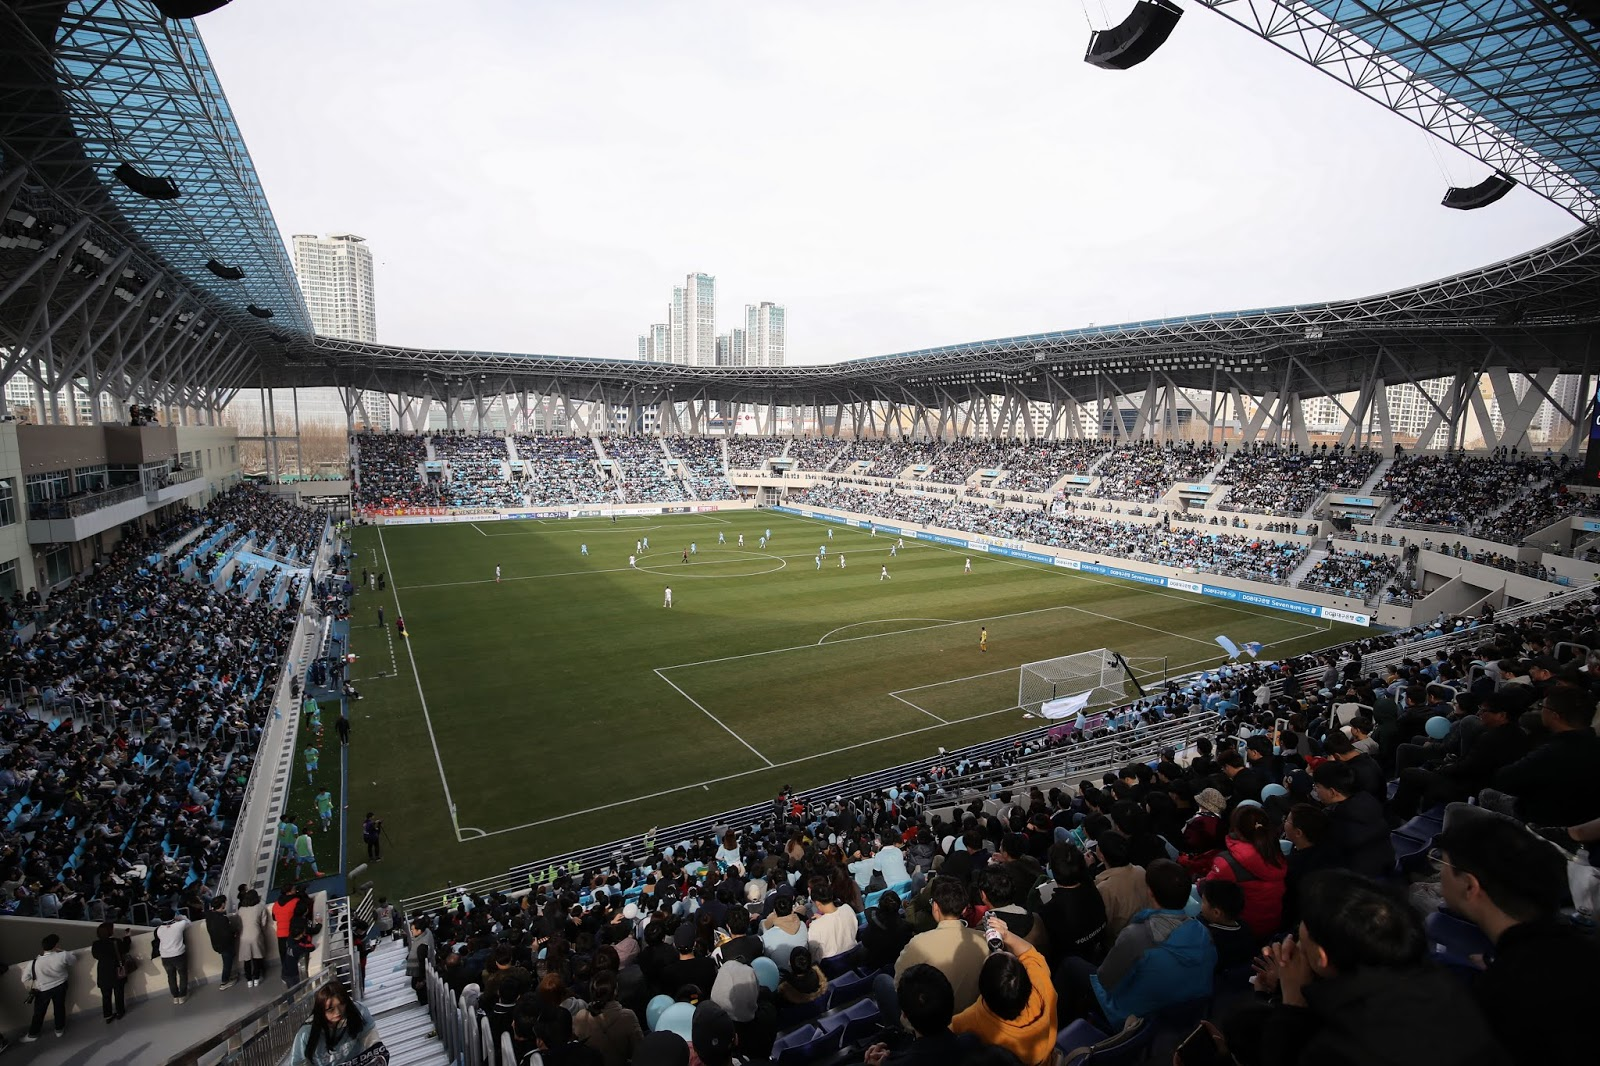 DGB Daegu Bank Park Nominated for Stadium Award